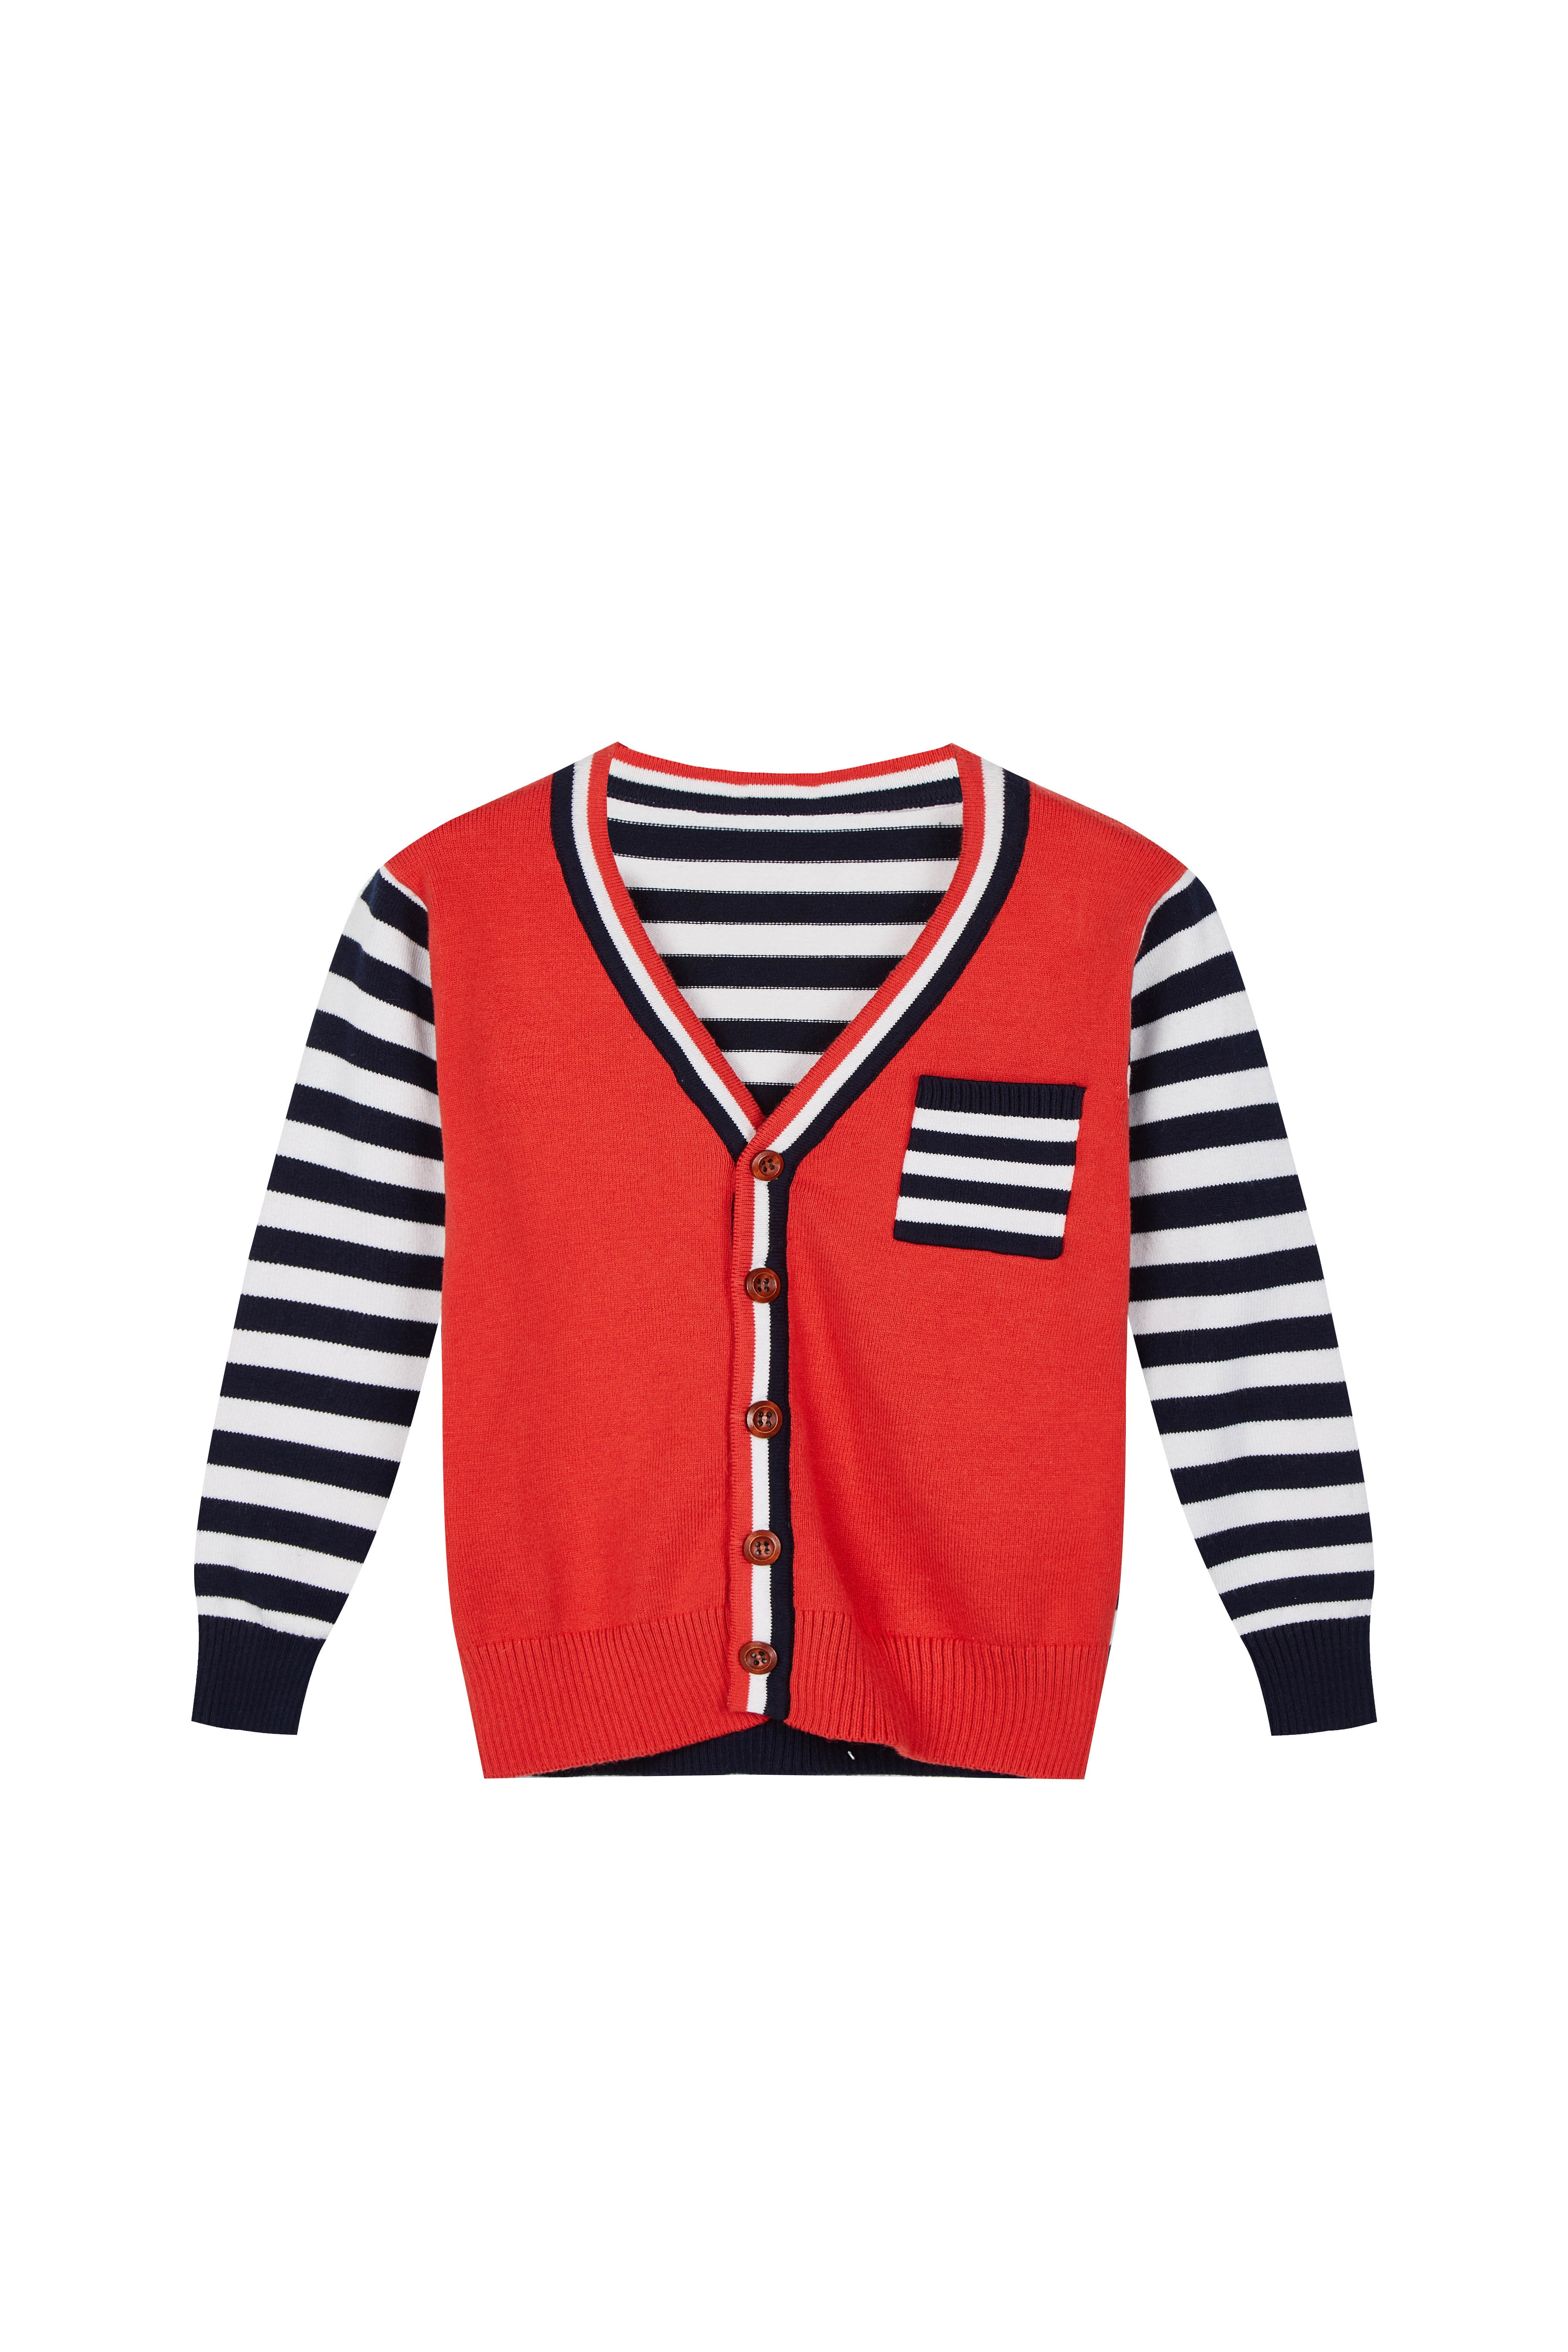 Boys's Stripe Knitted Cardigan Button Closure Long Sleeve Sweater Tops